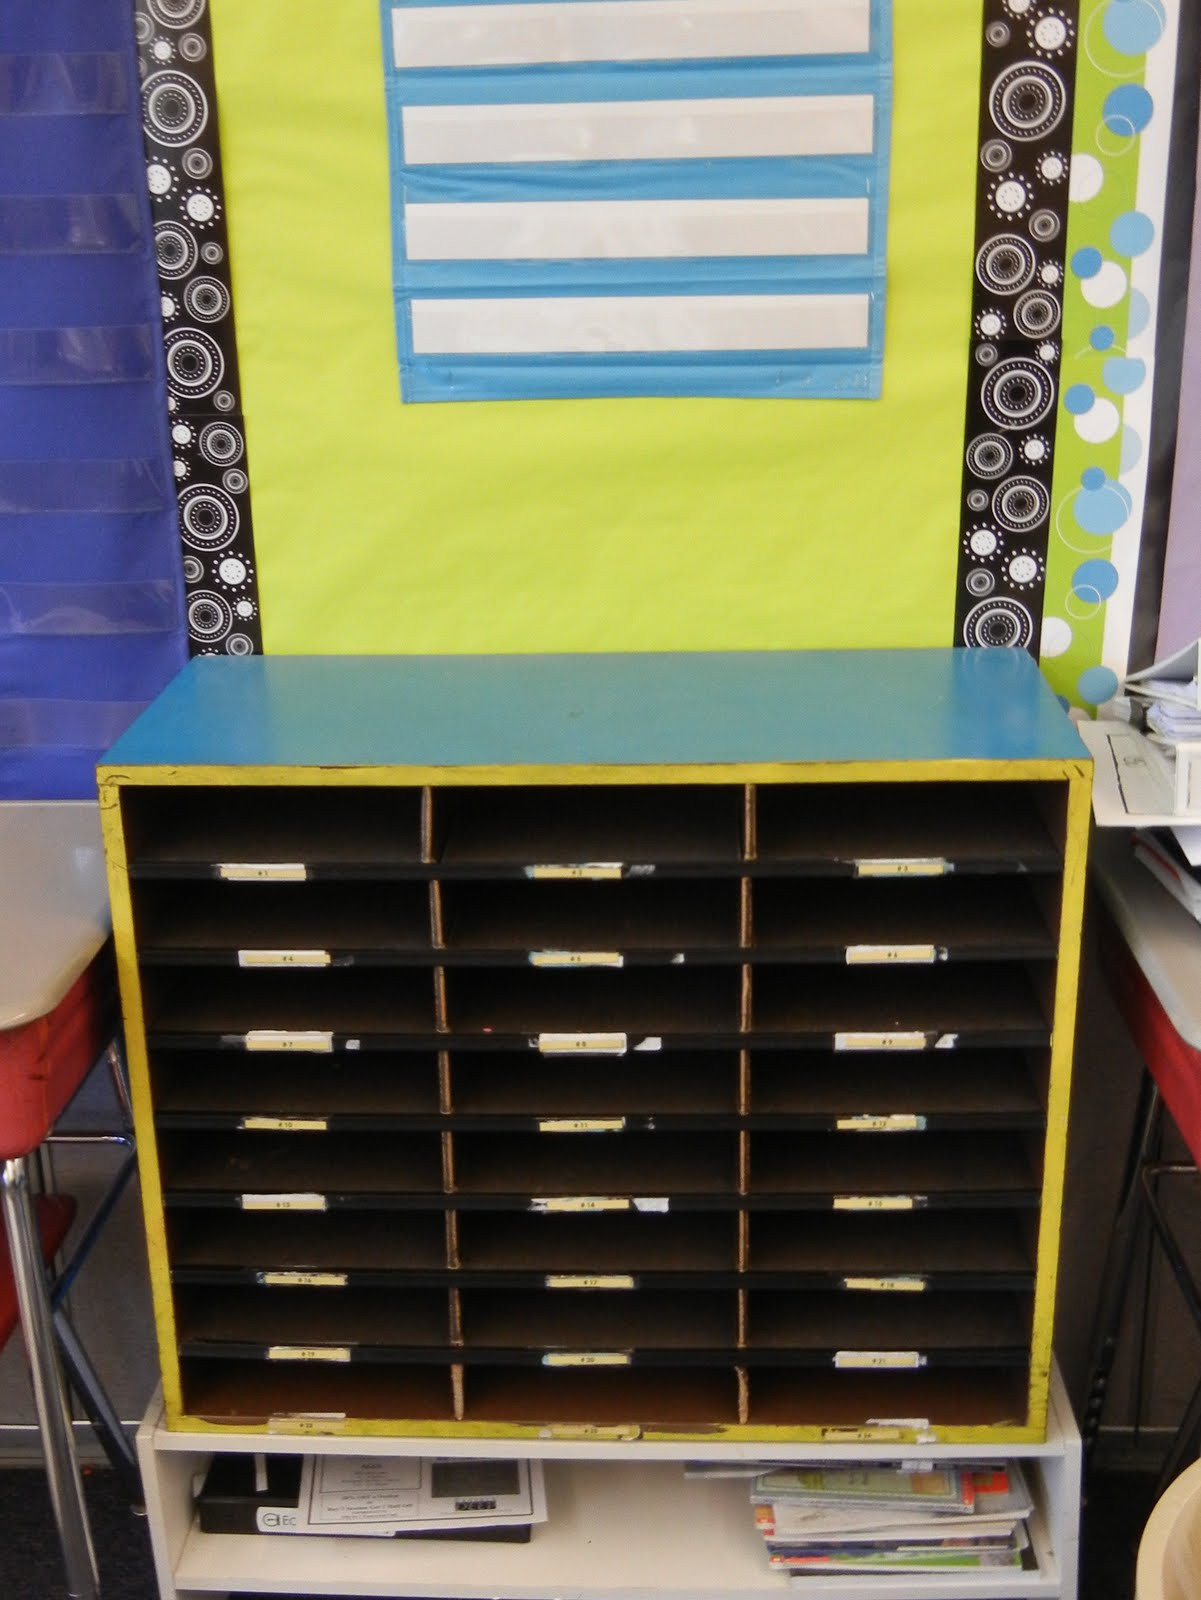 Best ideas about Classroom Mailboxes DIY . Save or Pin Ideas for Cheap and Easy STUDENT MAILBOXES in the Now.